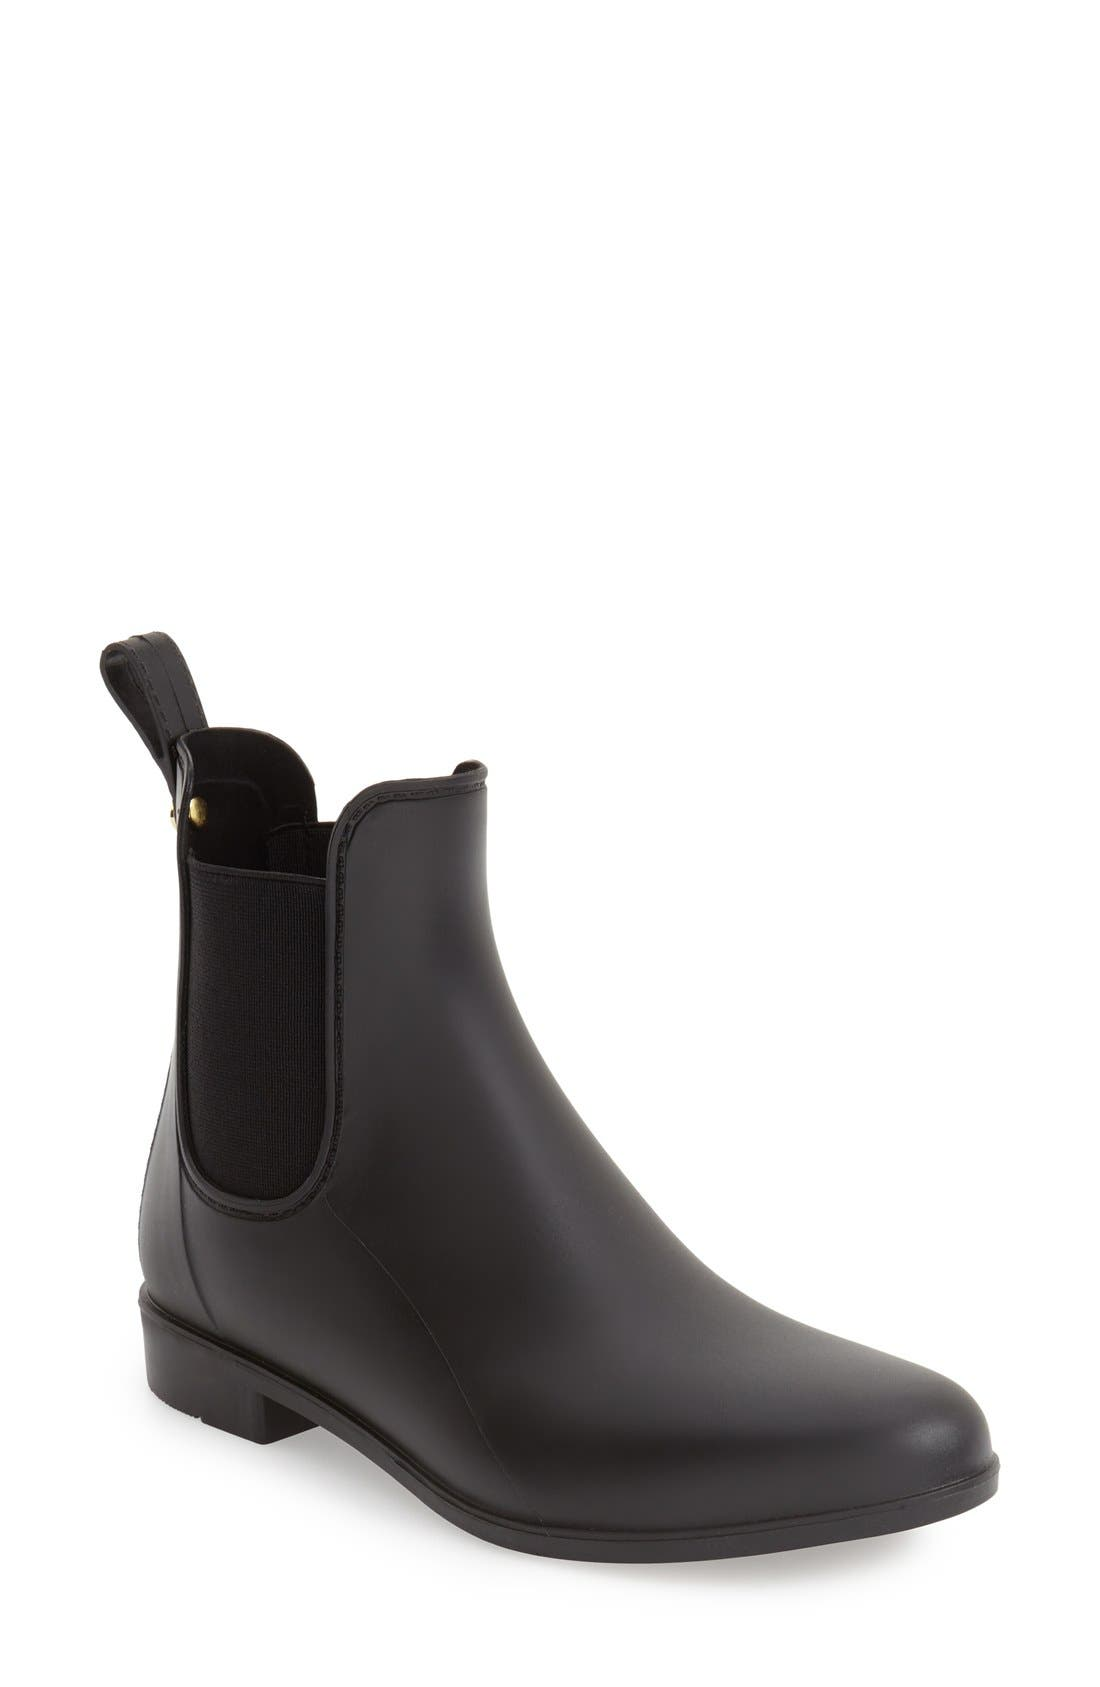 'Tinsley' Rain Boot,                             Main thumbnail 1, color,                             Matte Black